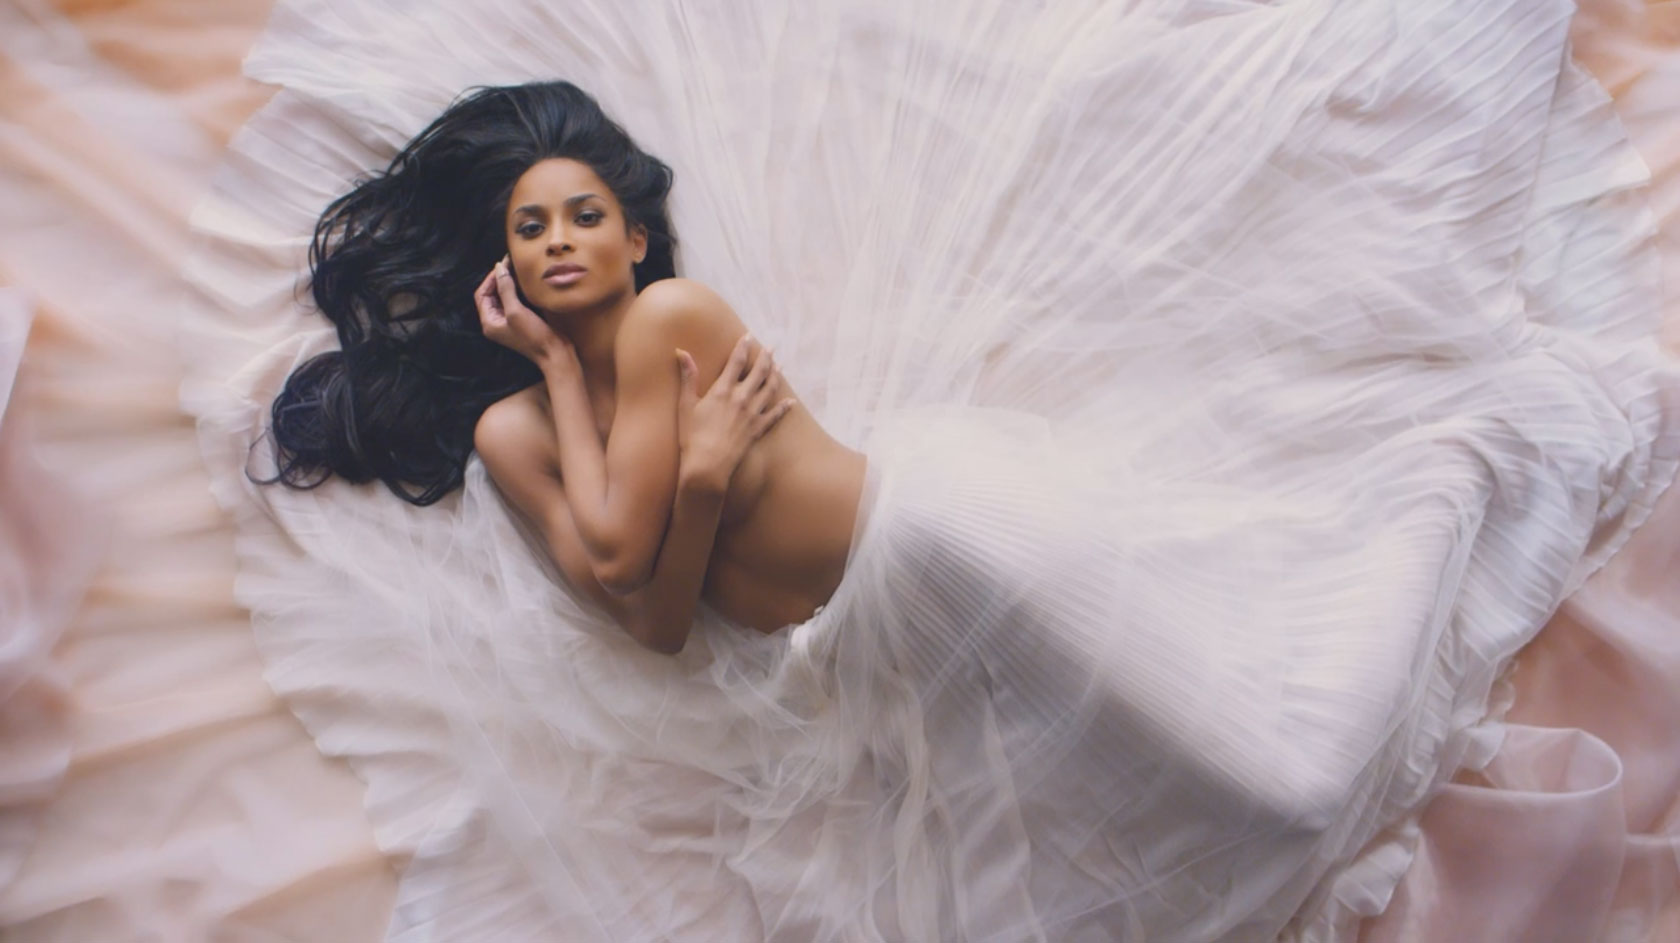 Ciara - I Bet | Video Premiere